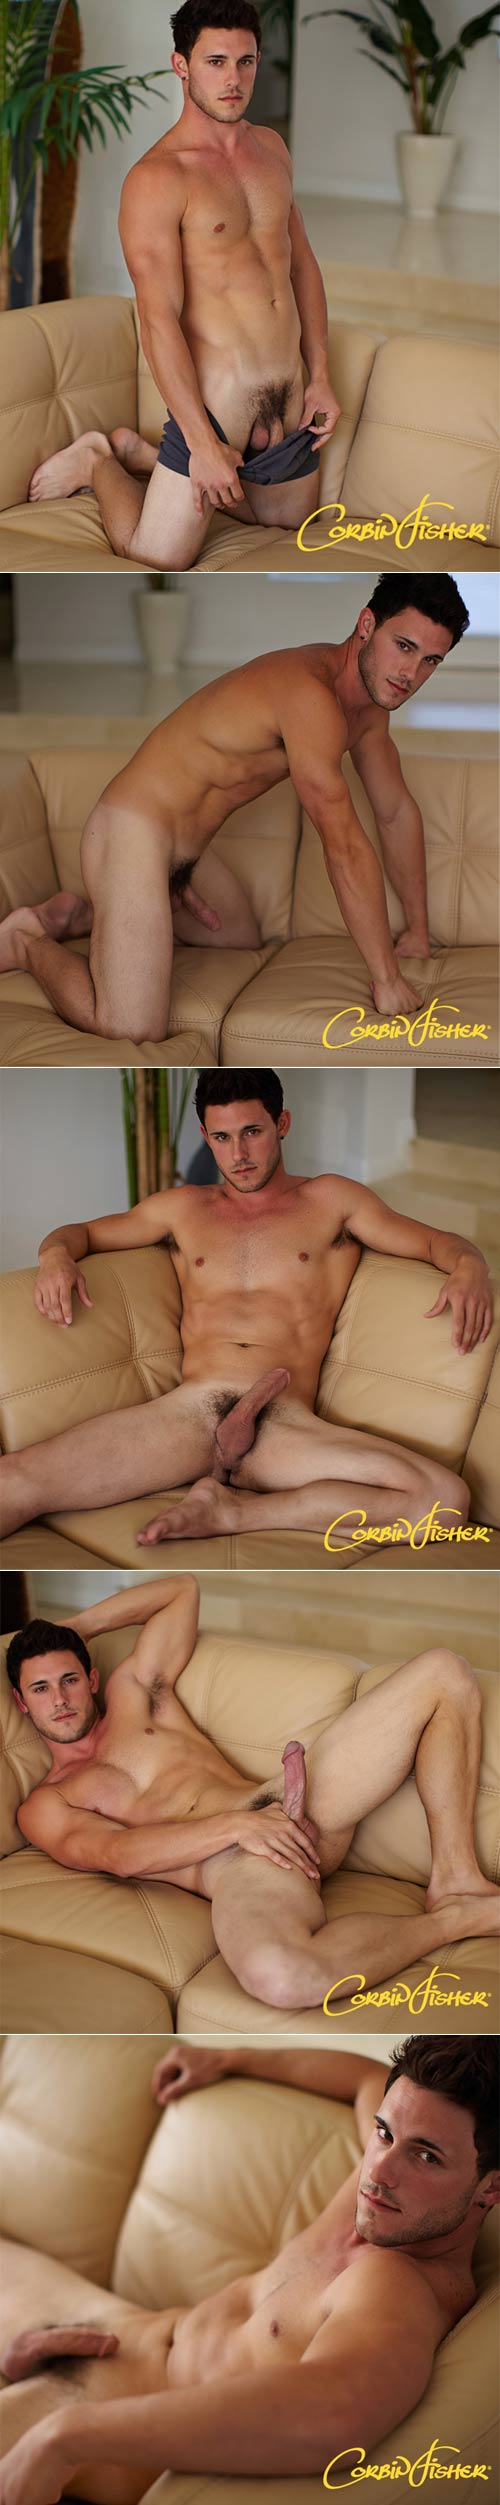 Sean II at CorbinFisher